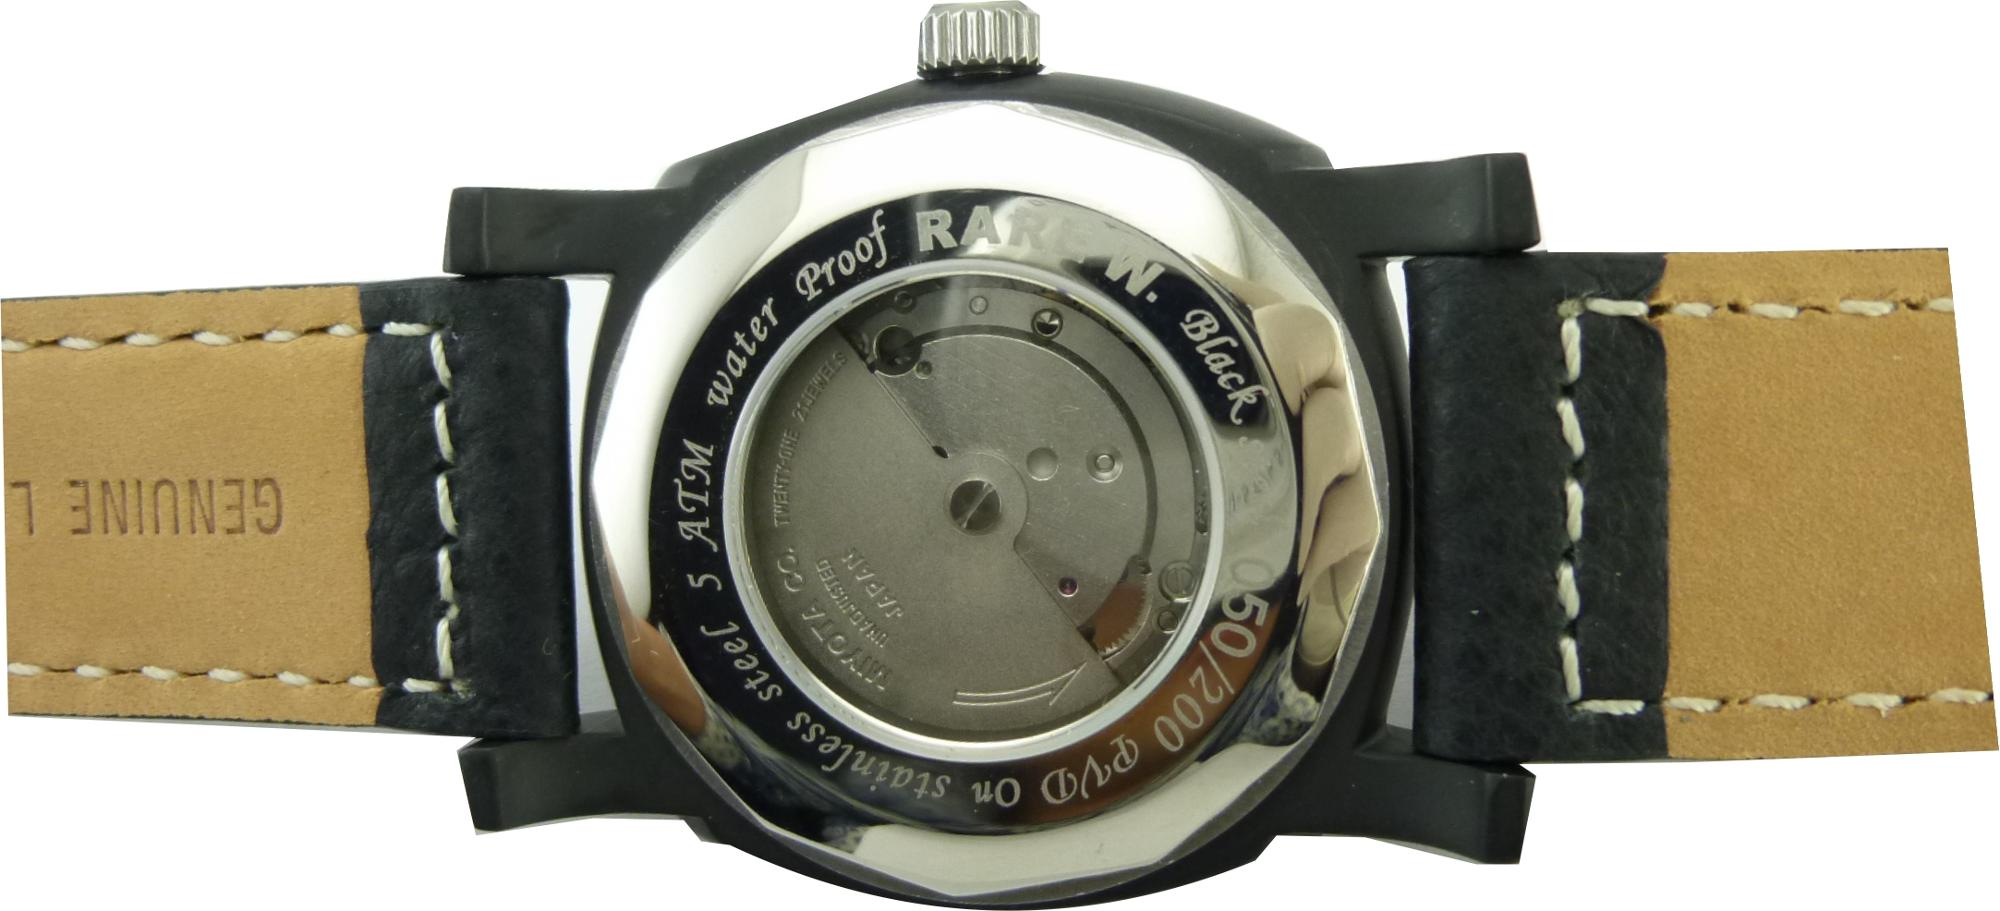 sapphire crystal case Japan movement automatic watch